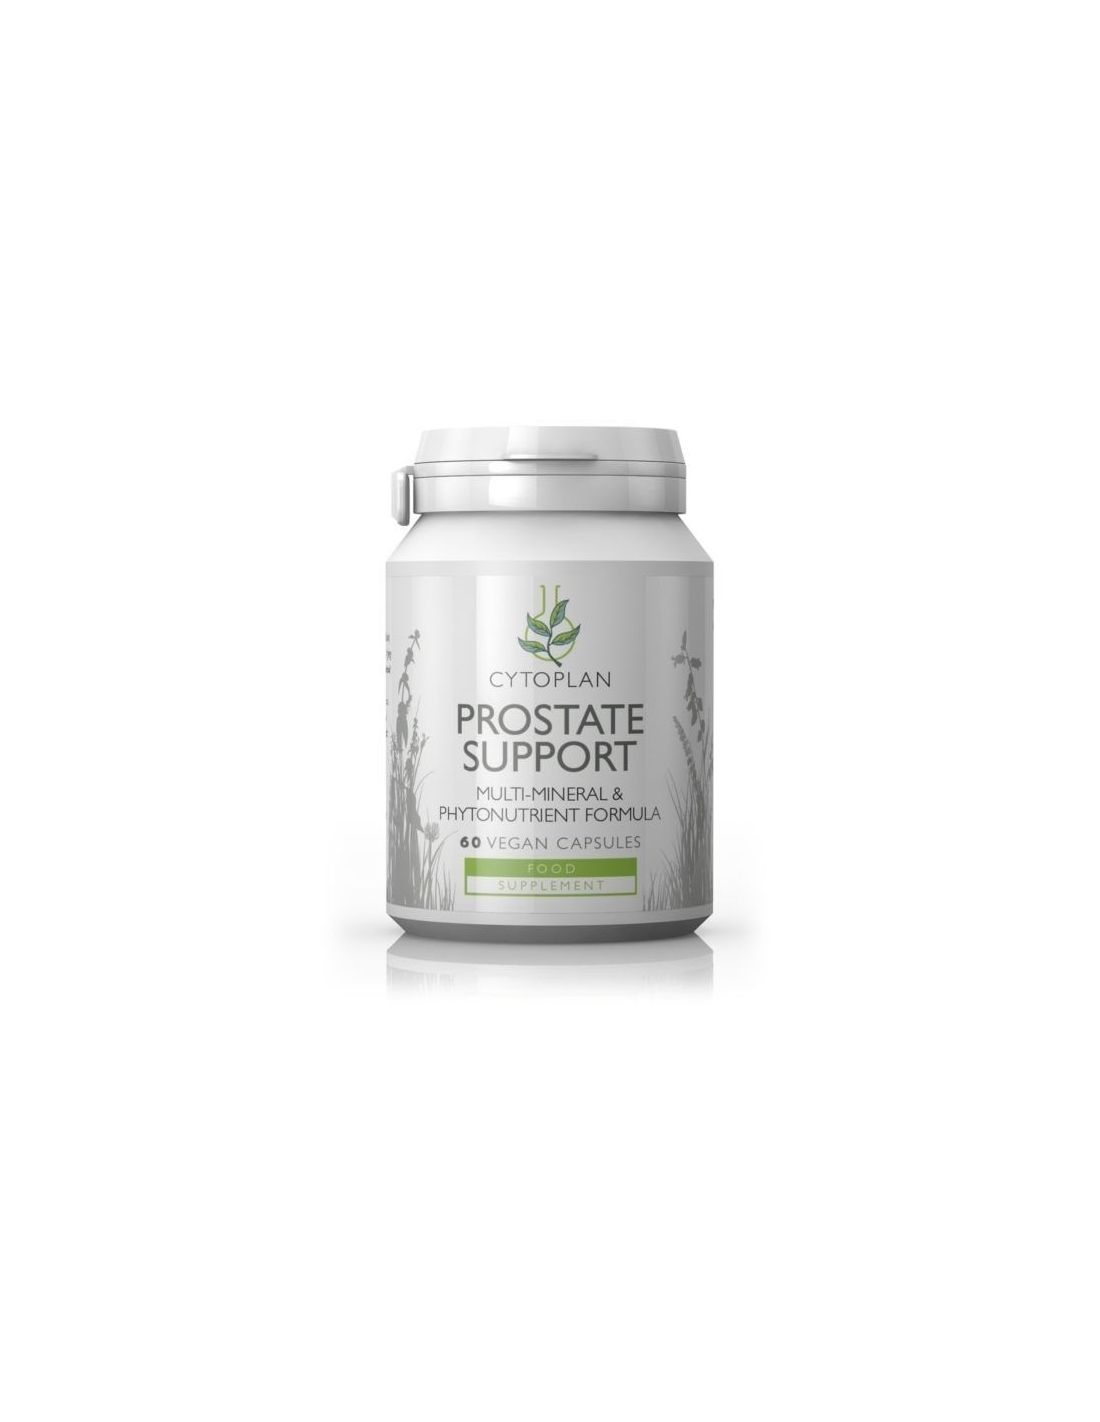 Cytoplan Prostate Support multi-mineral and phytonutrient formula